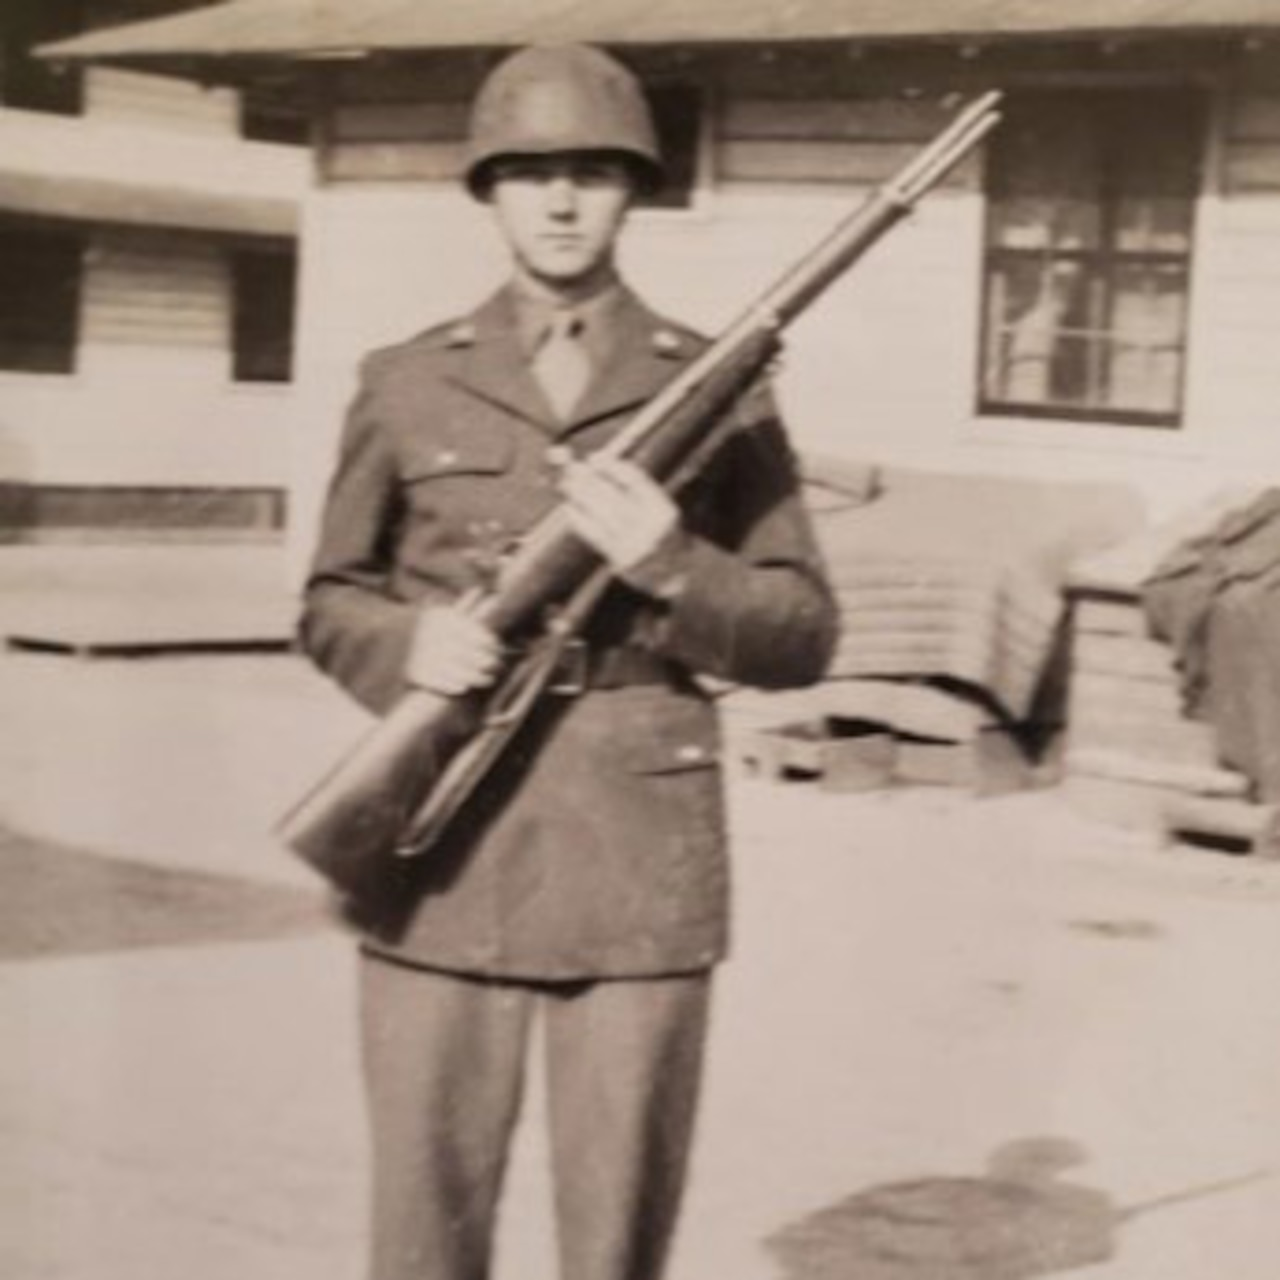 A young man dressed in an Army uniform poses hold up his rifle for a photo.